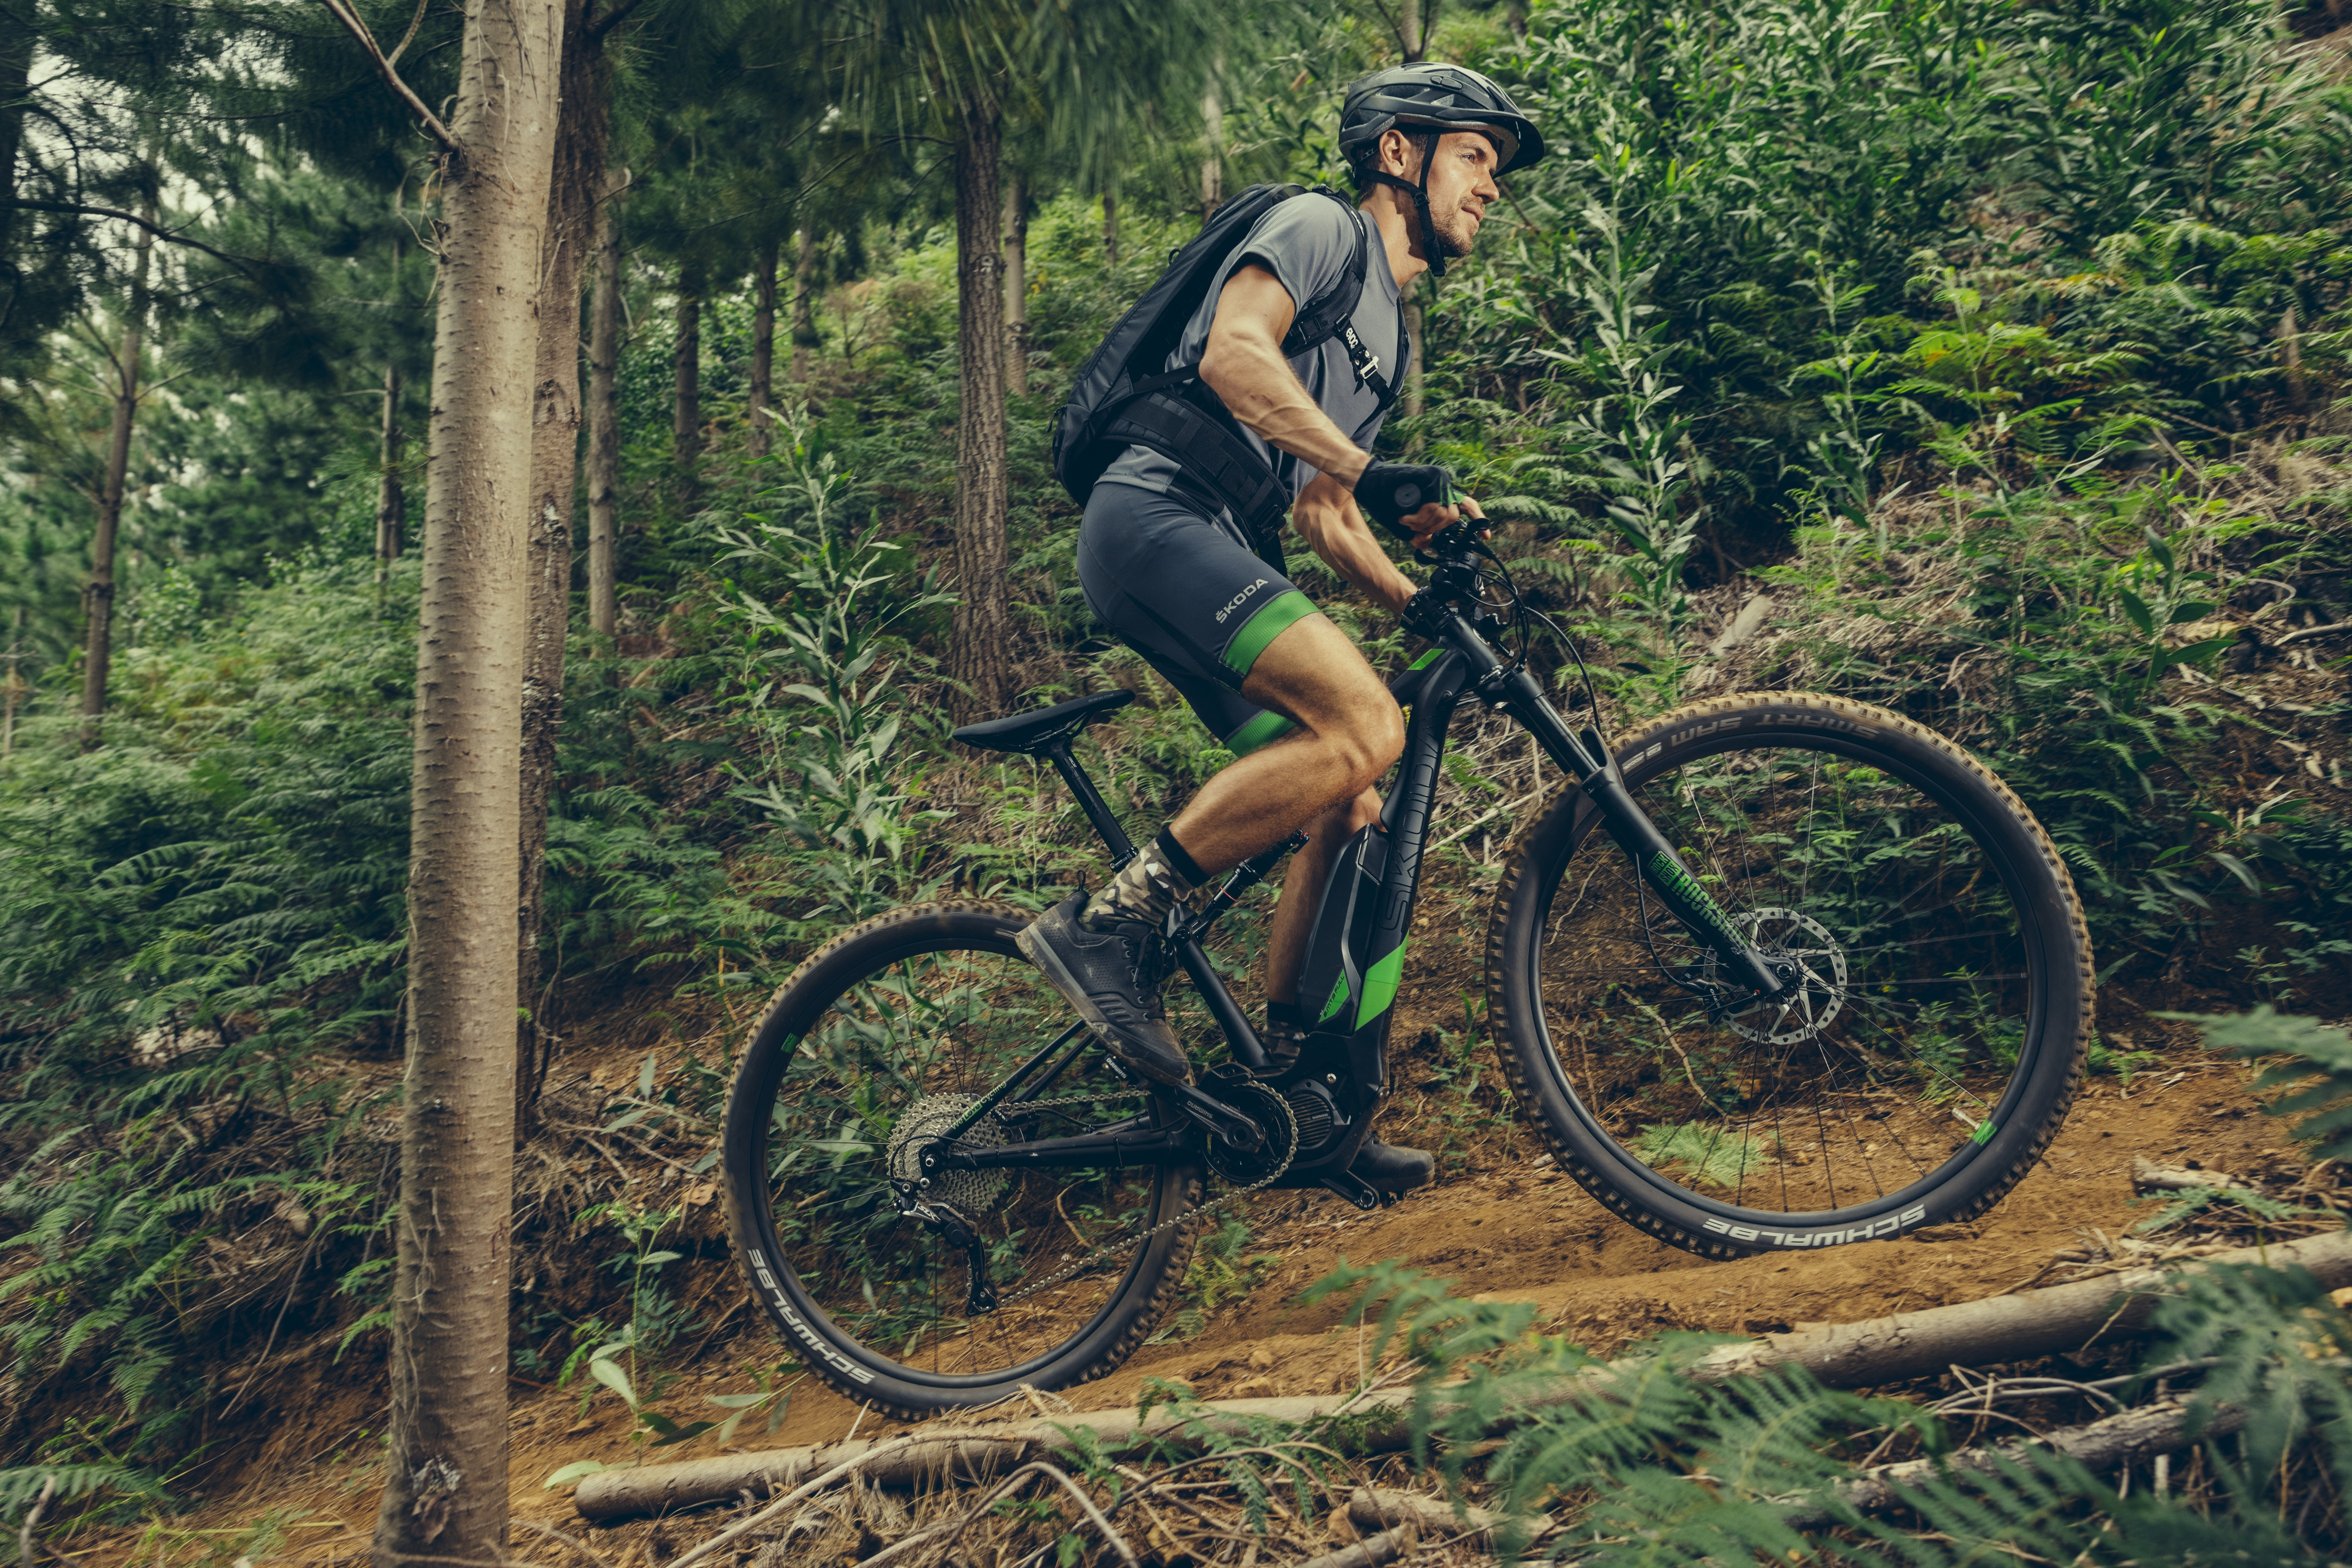 World Bicycle Day 2020 and SKODA: A tradition of excellence on two wheels, too - Image 1